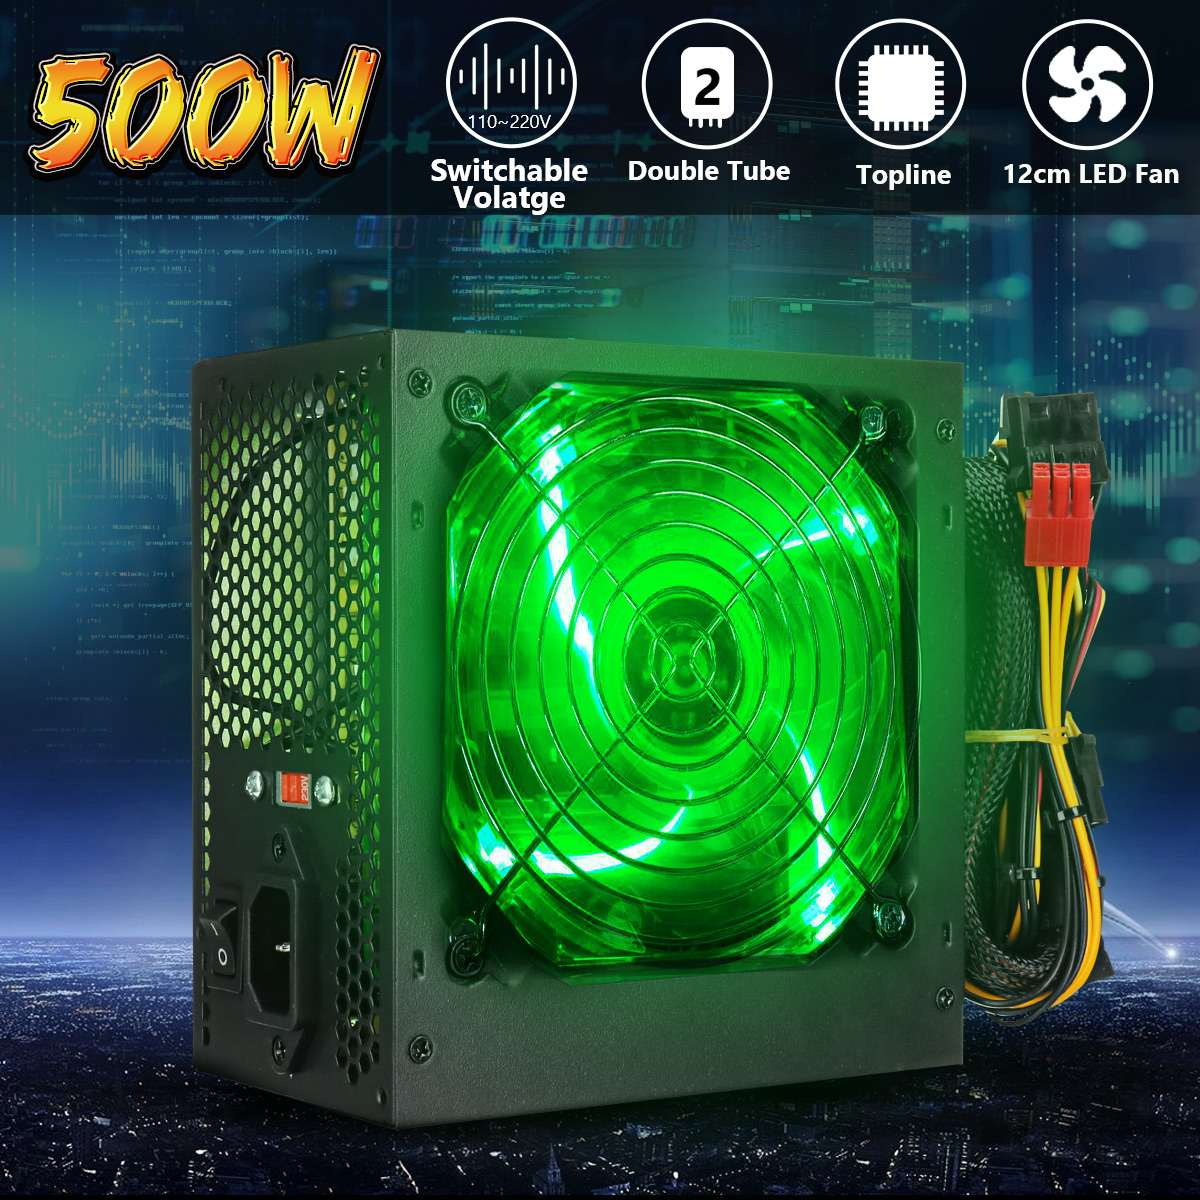 Max 500W Power Supply 120mm LED Fan 24 Pin PCI SATA ATX 12V PC Computer Power Supply 110~220V For Desktop Gaming